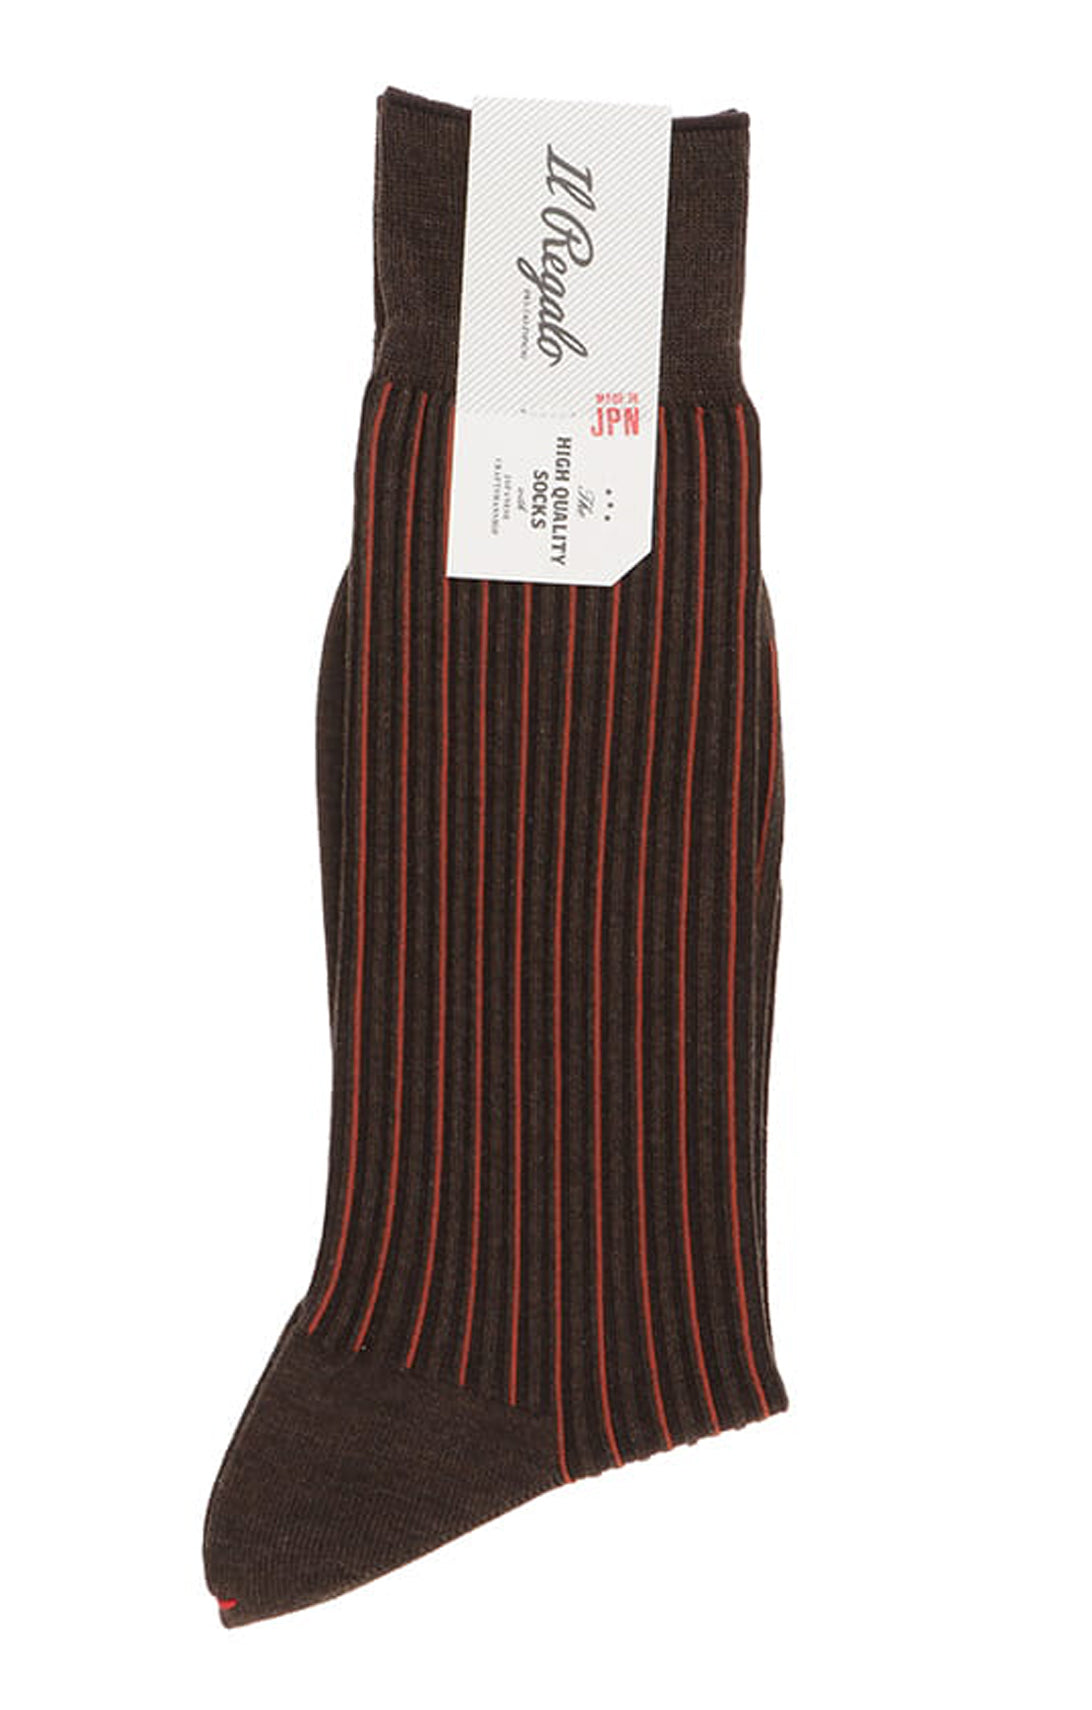 Pin Stripes Mid-Calf Socks